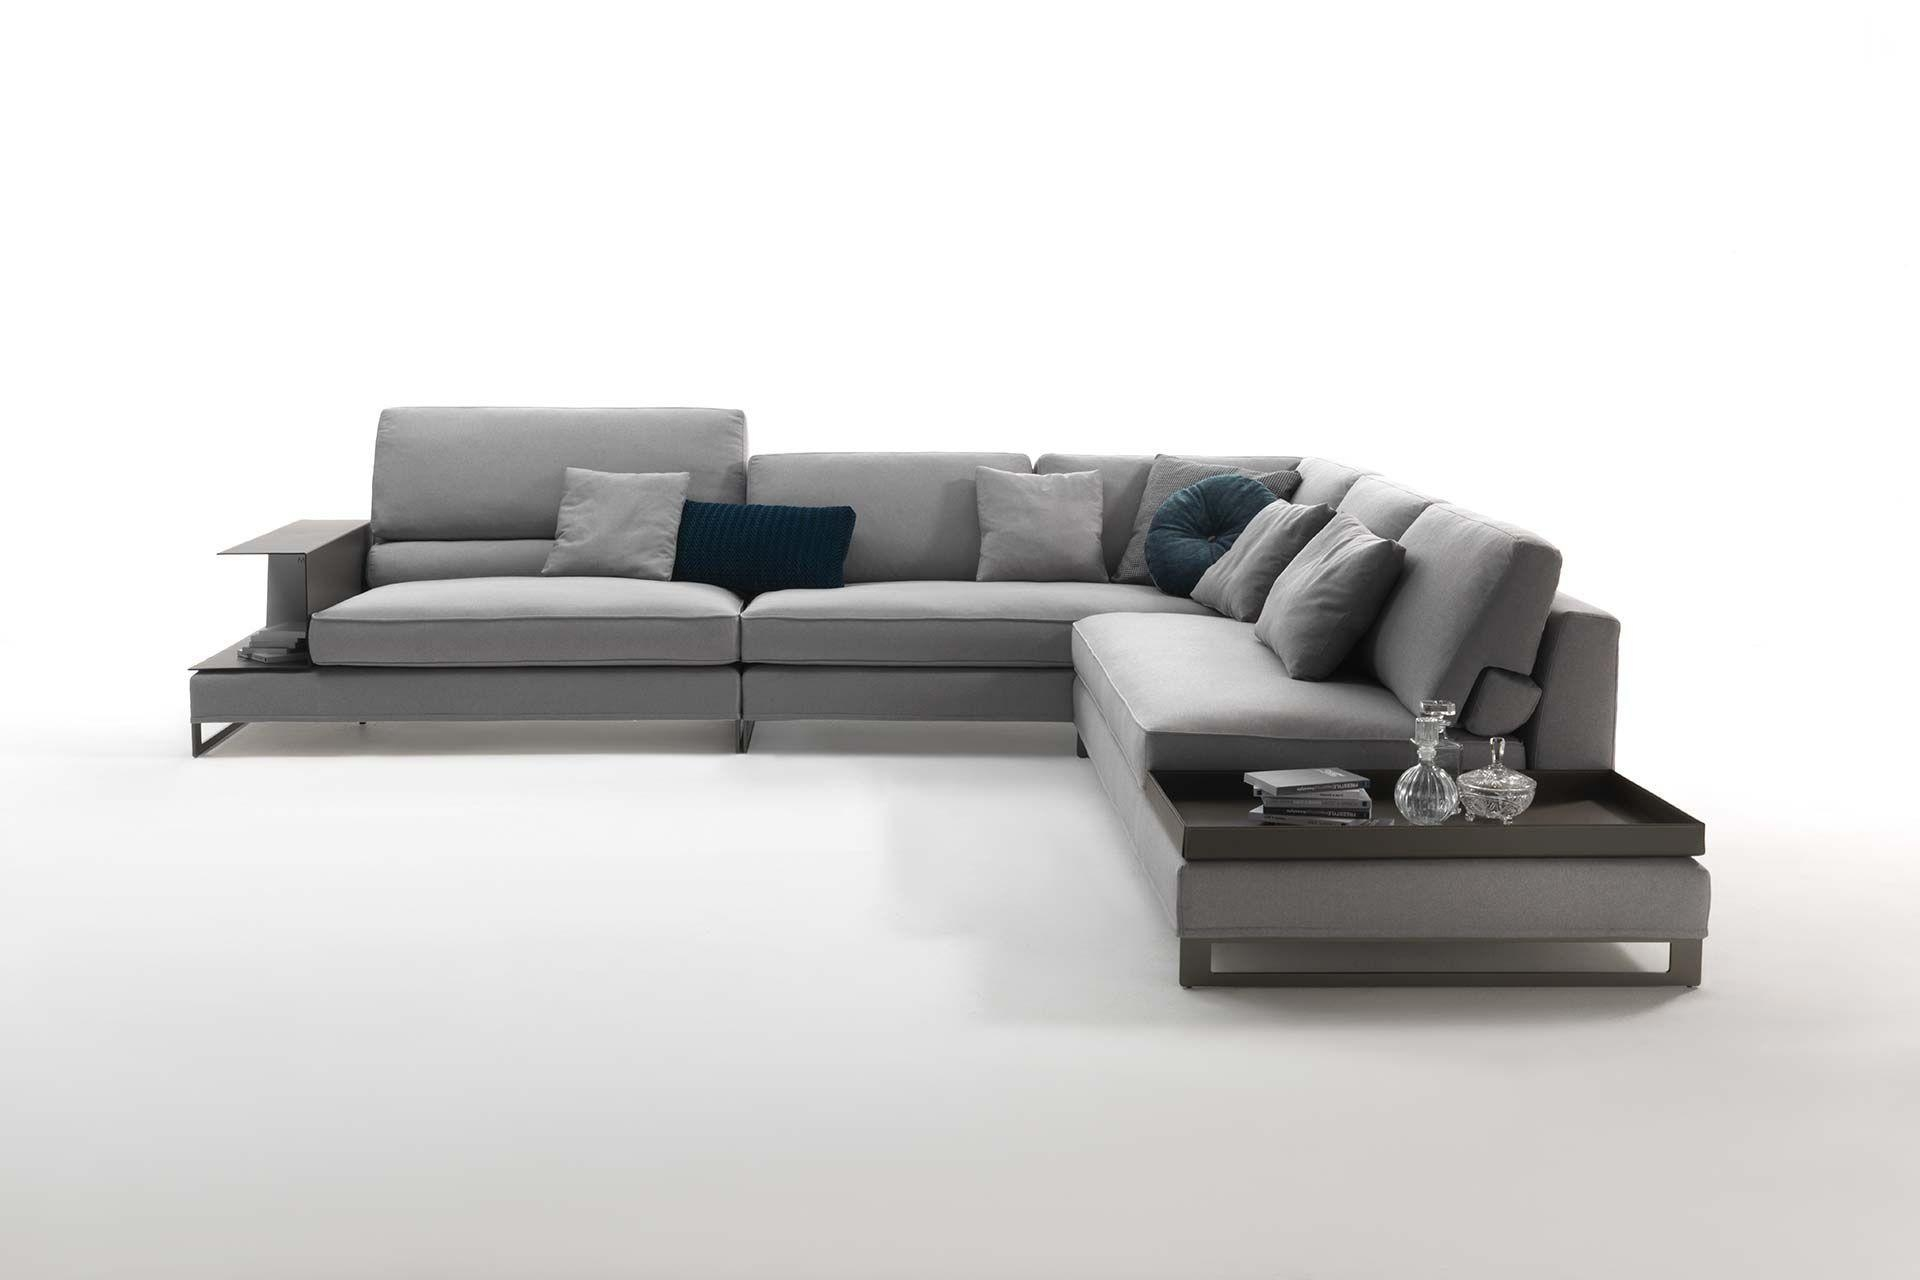 Modular Sofa / Contemporary / Fabric / Leather – Davis Case Pertaining To Davis Sofas (View 6 of 20)